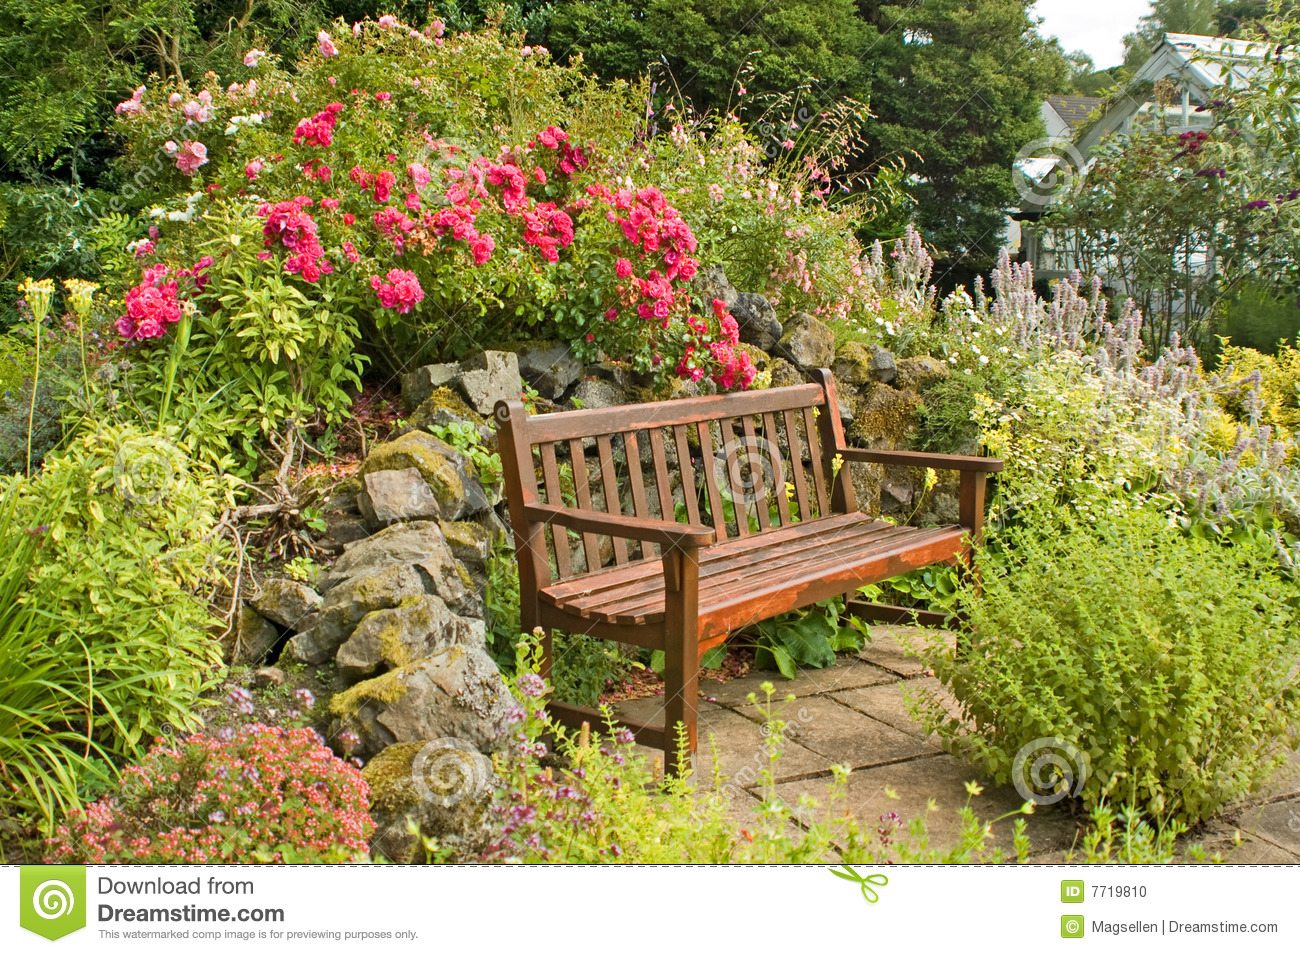 Banc de jardin photo stock image du greenhouse roches for Plan de banc de jardin